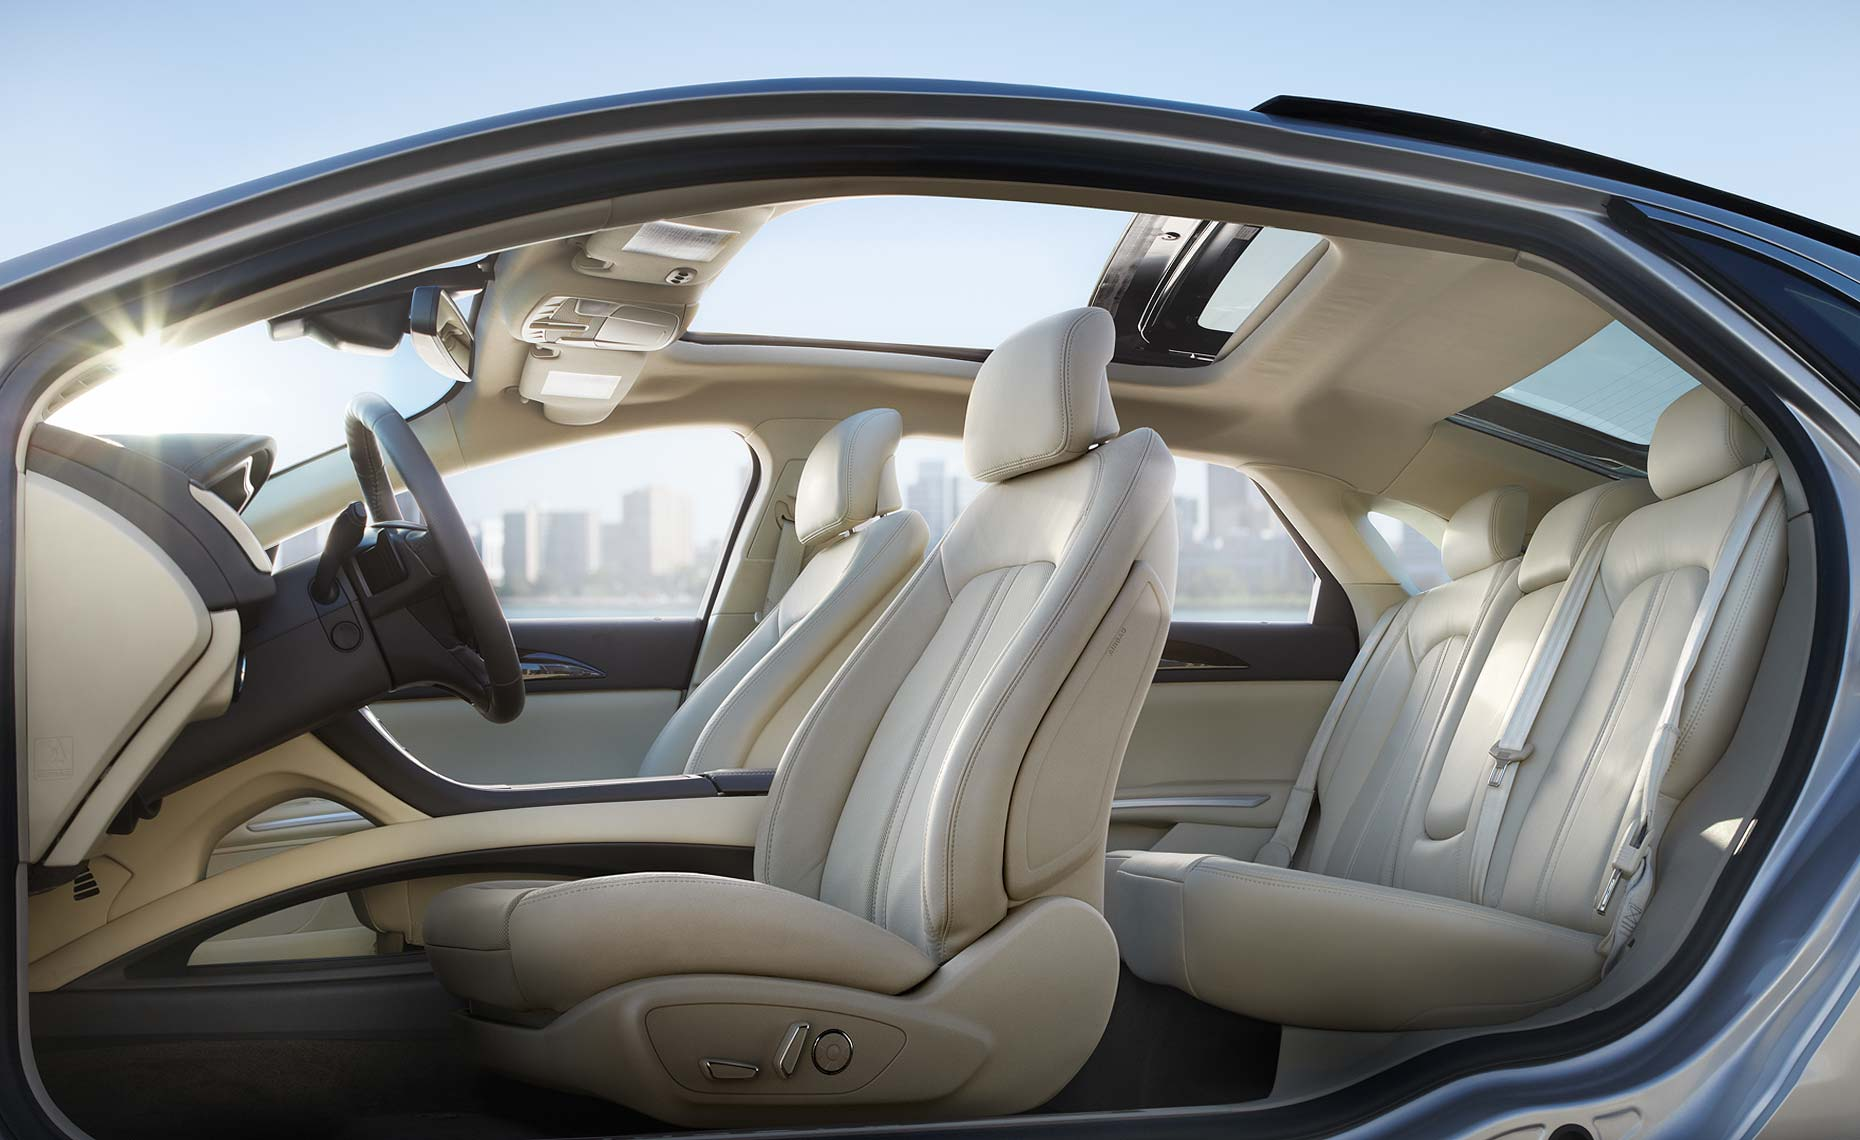 2013_lincoln_mkz_full-interior.jpg